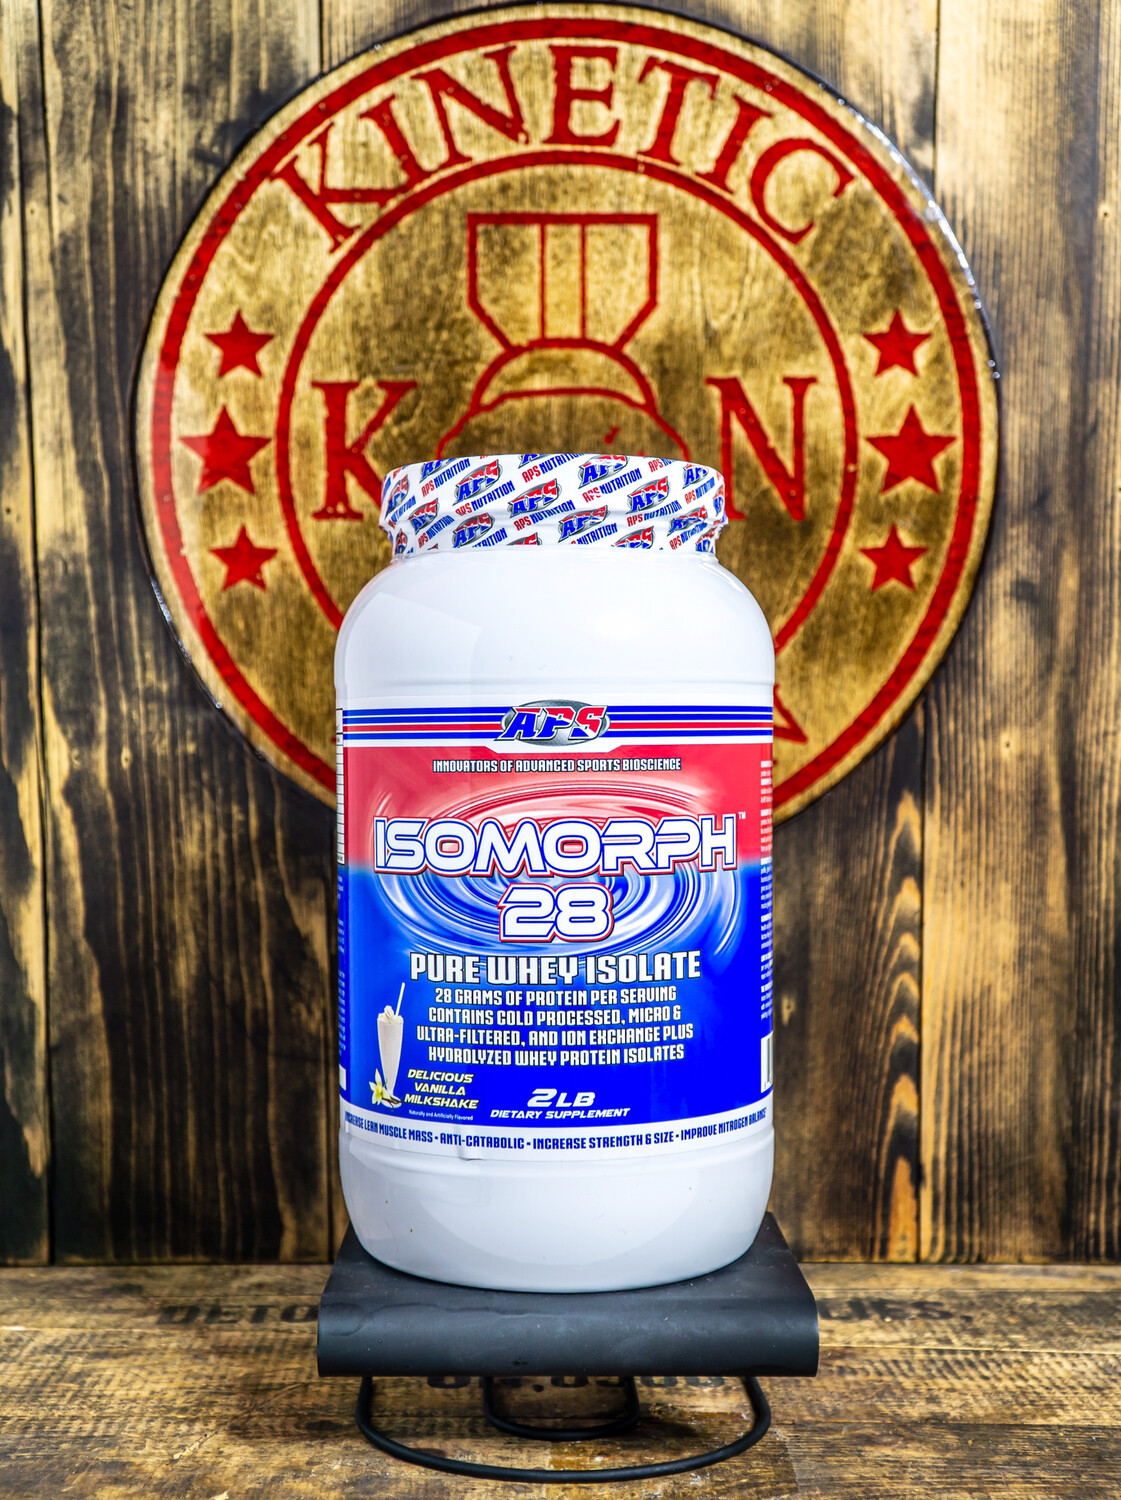 Aps, Isomorph, 28 Pure Whey Isolate, 27 Servings, 2Lb, Del Vanilla Milkshake